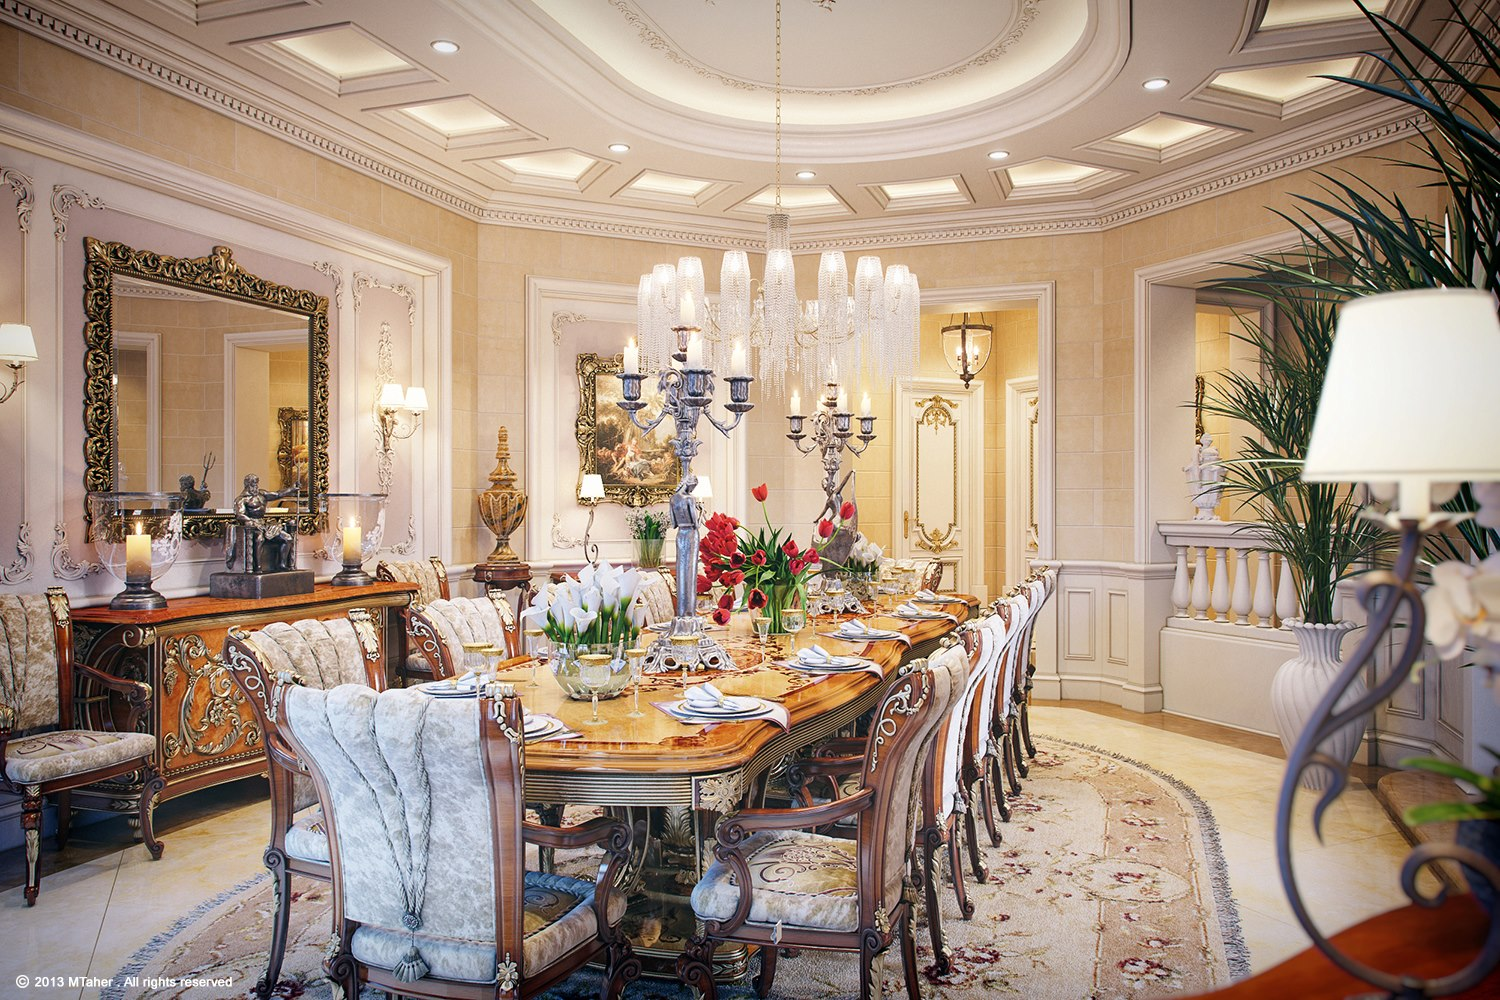 Luxury villa dining room 3 interior design ideas for Home dining room design